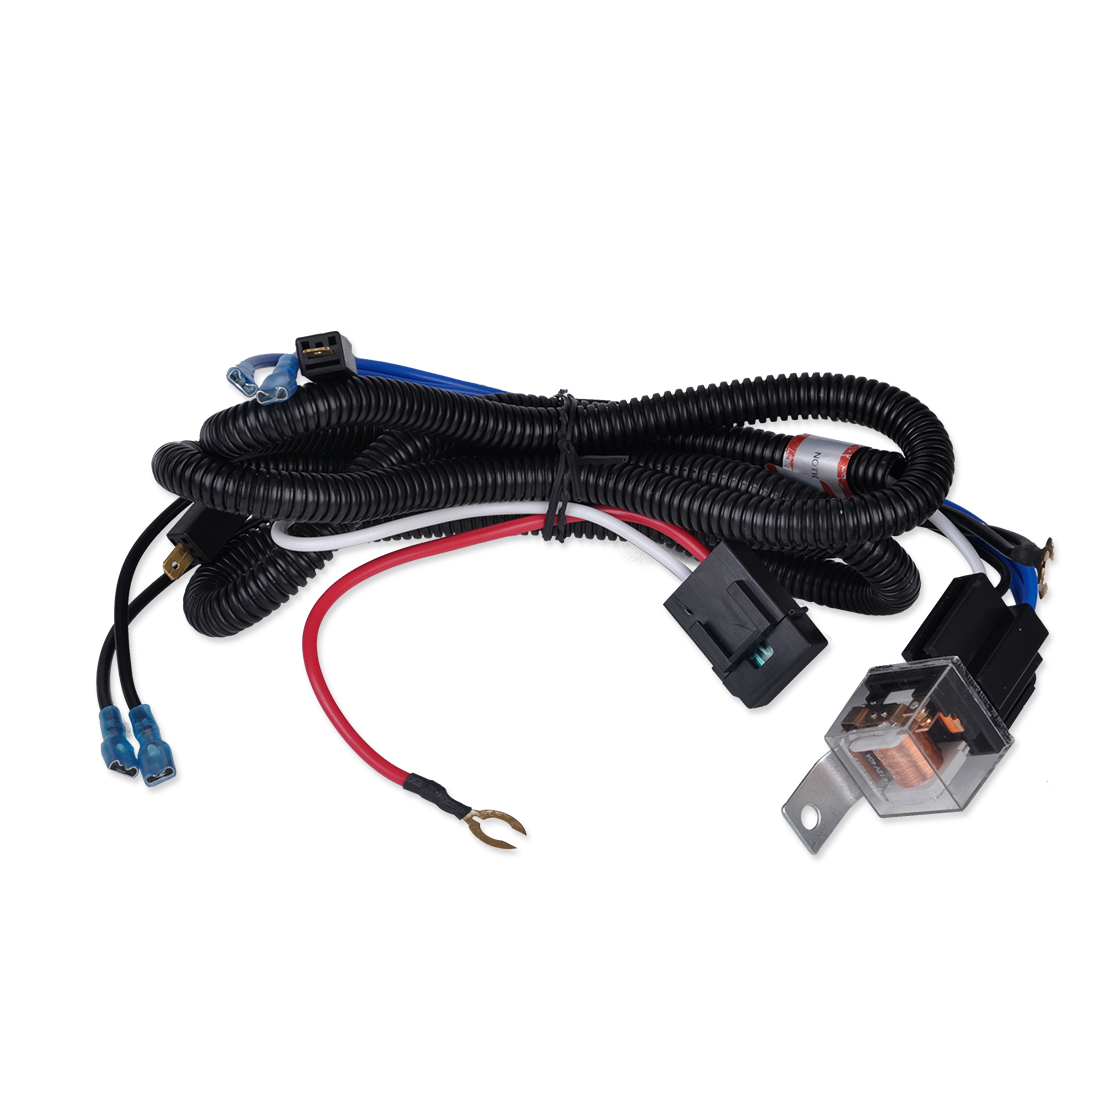 citall 12v car truck grille mount blast tone horn wiring harness relay kit for ford toyota suzuki peugeot kia honda mazda audi in cables adapters sockets  [ 1110 x 1110 Pixel ]